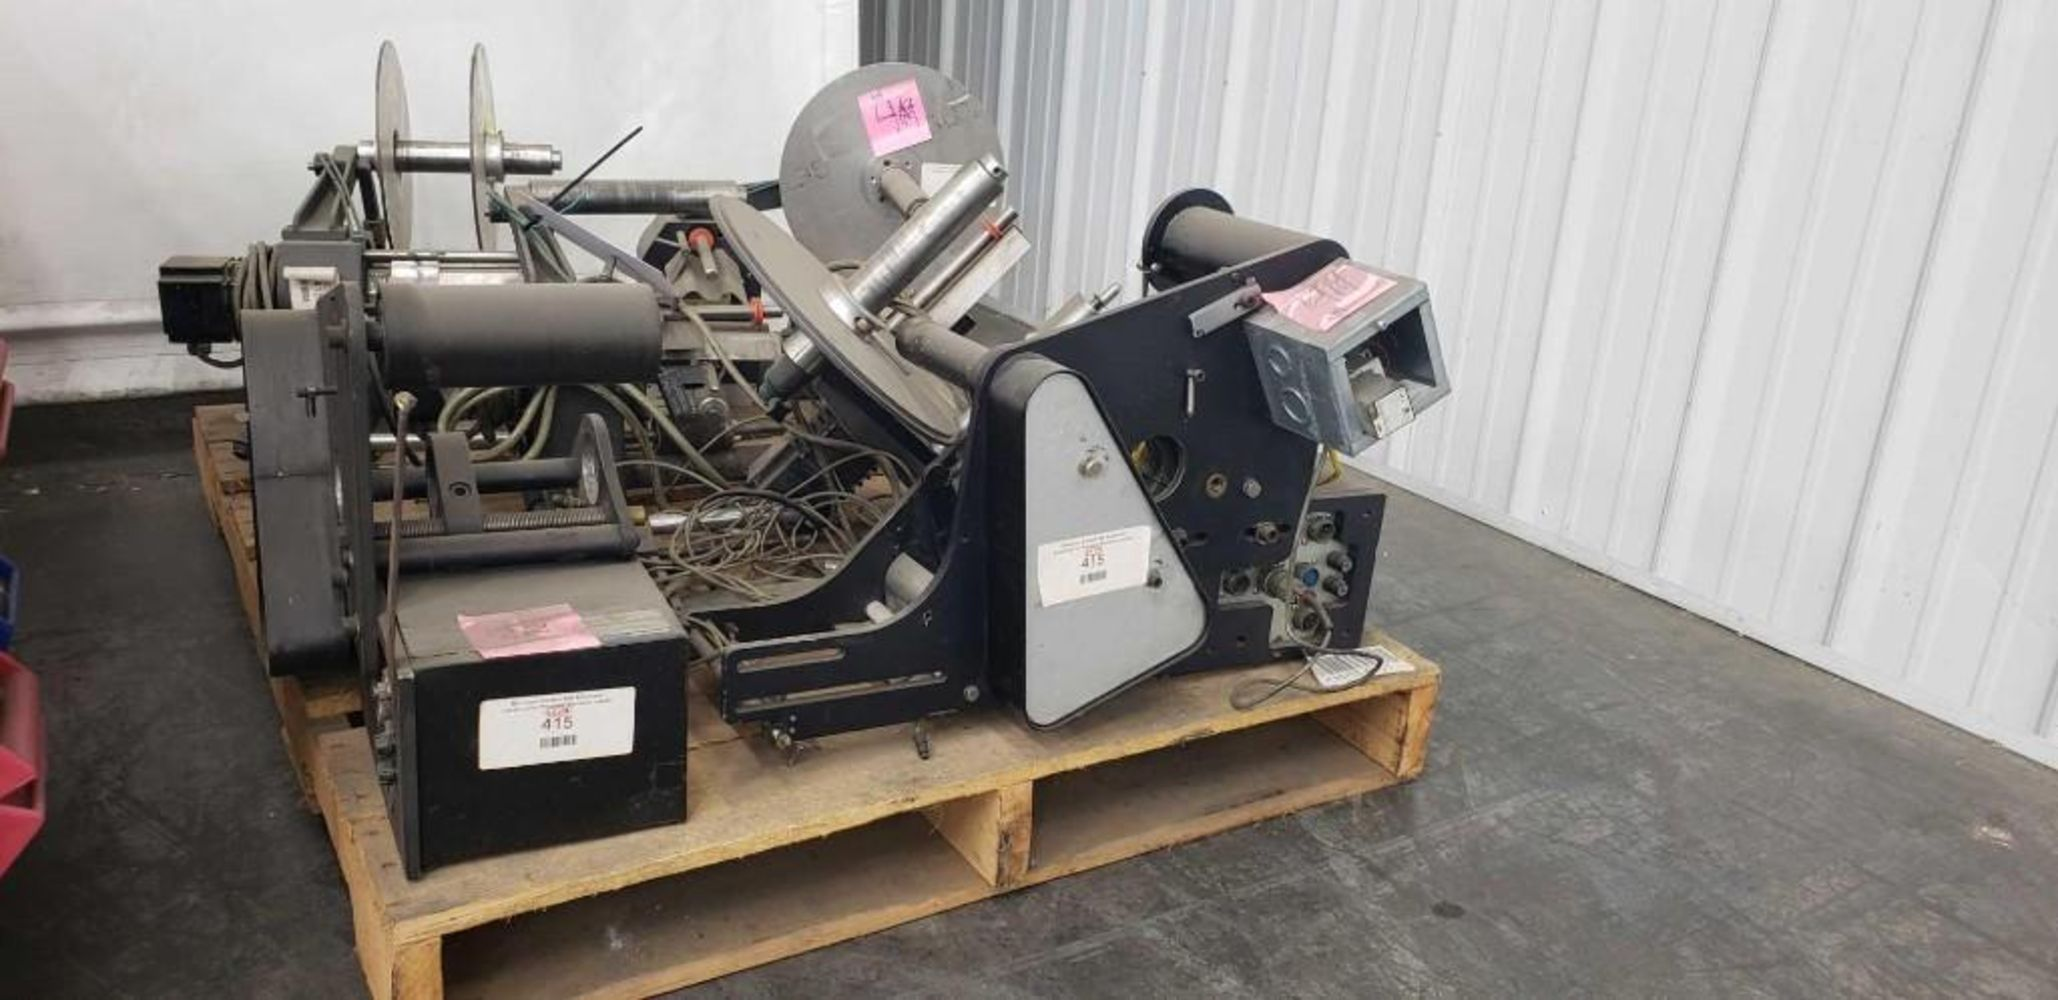 Consignment Auction of Surplus MRO Industrial Parts Featuring Allen-Bradley components, motors, and more!